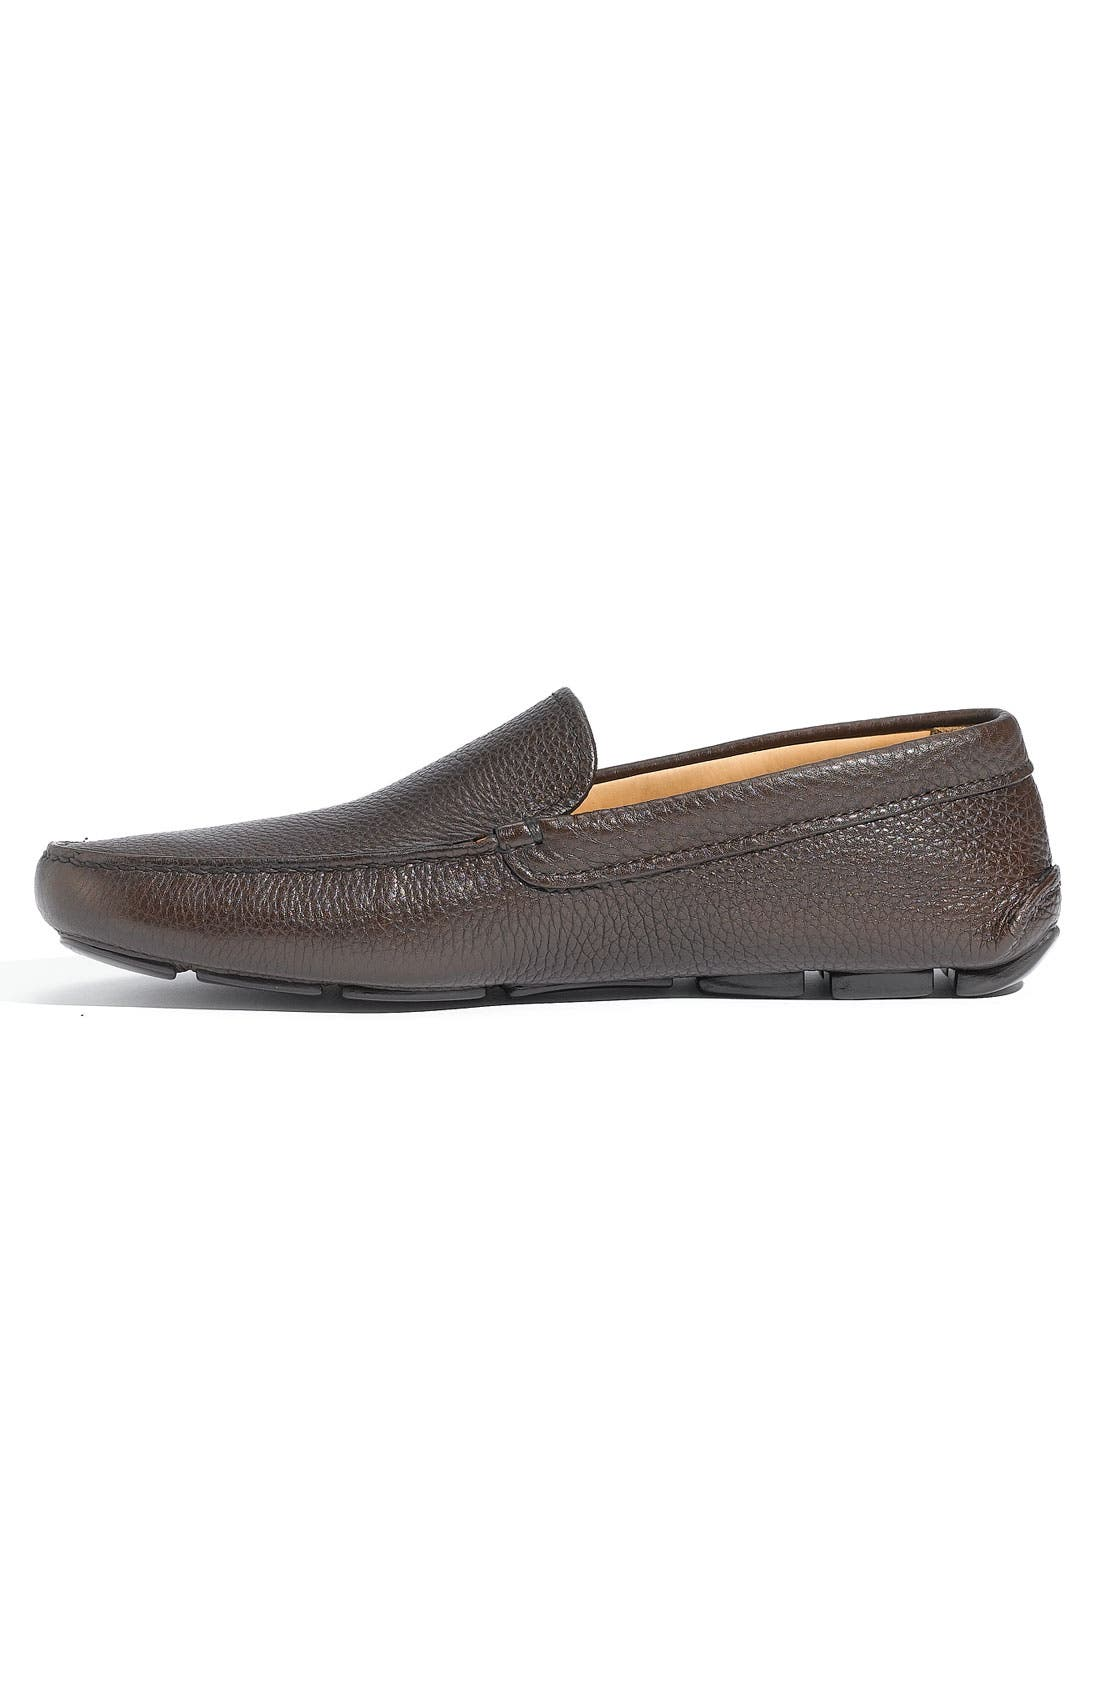 Alternate Image 2  - Prada Pebbled Leather Driving Shoe (Men)